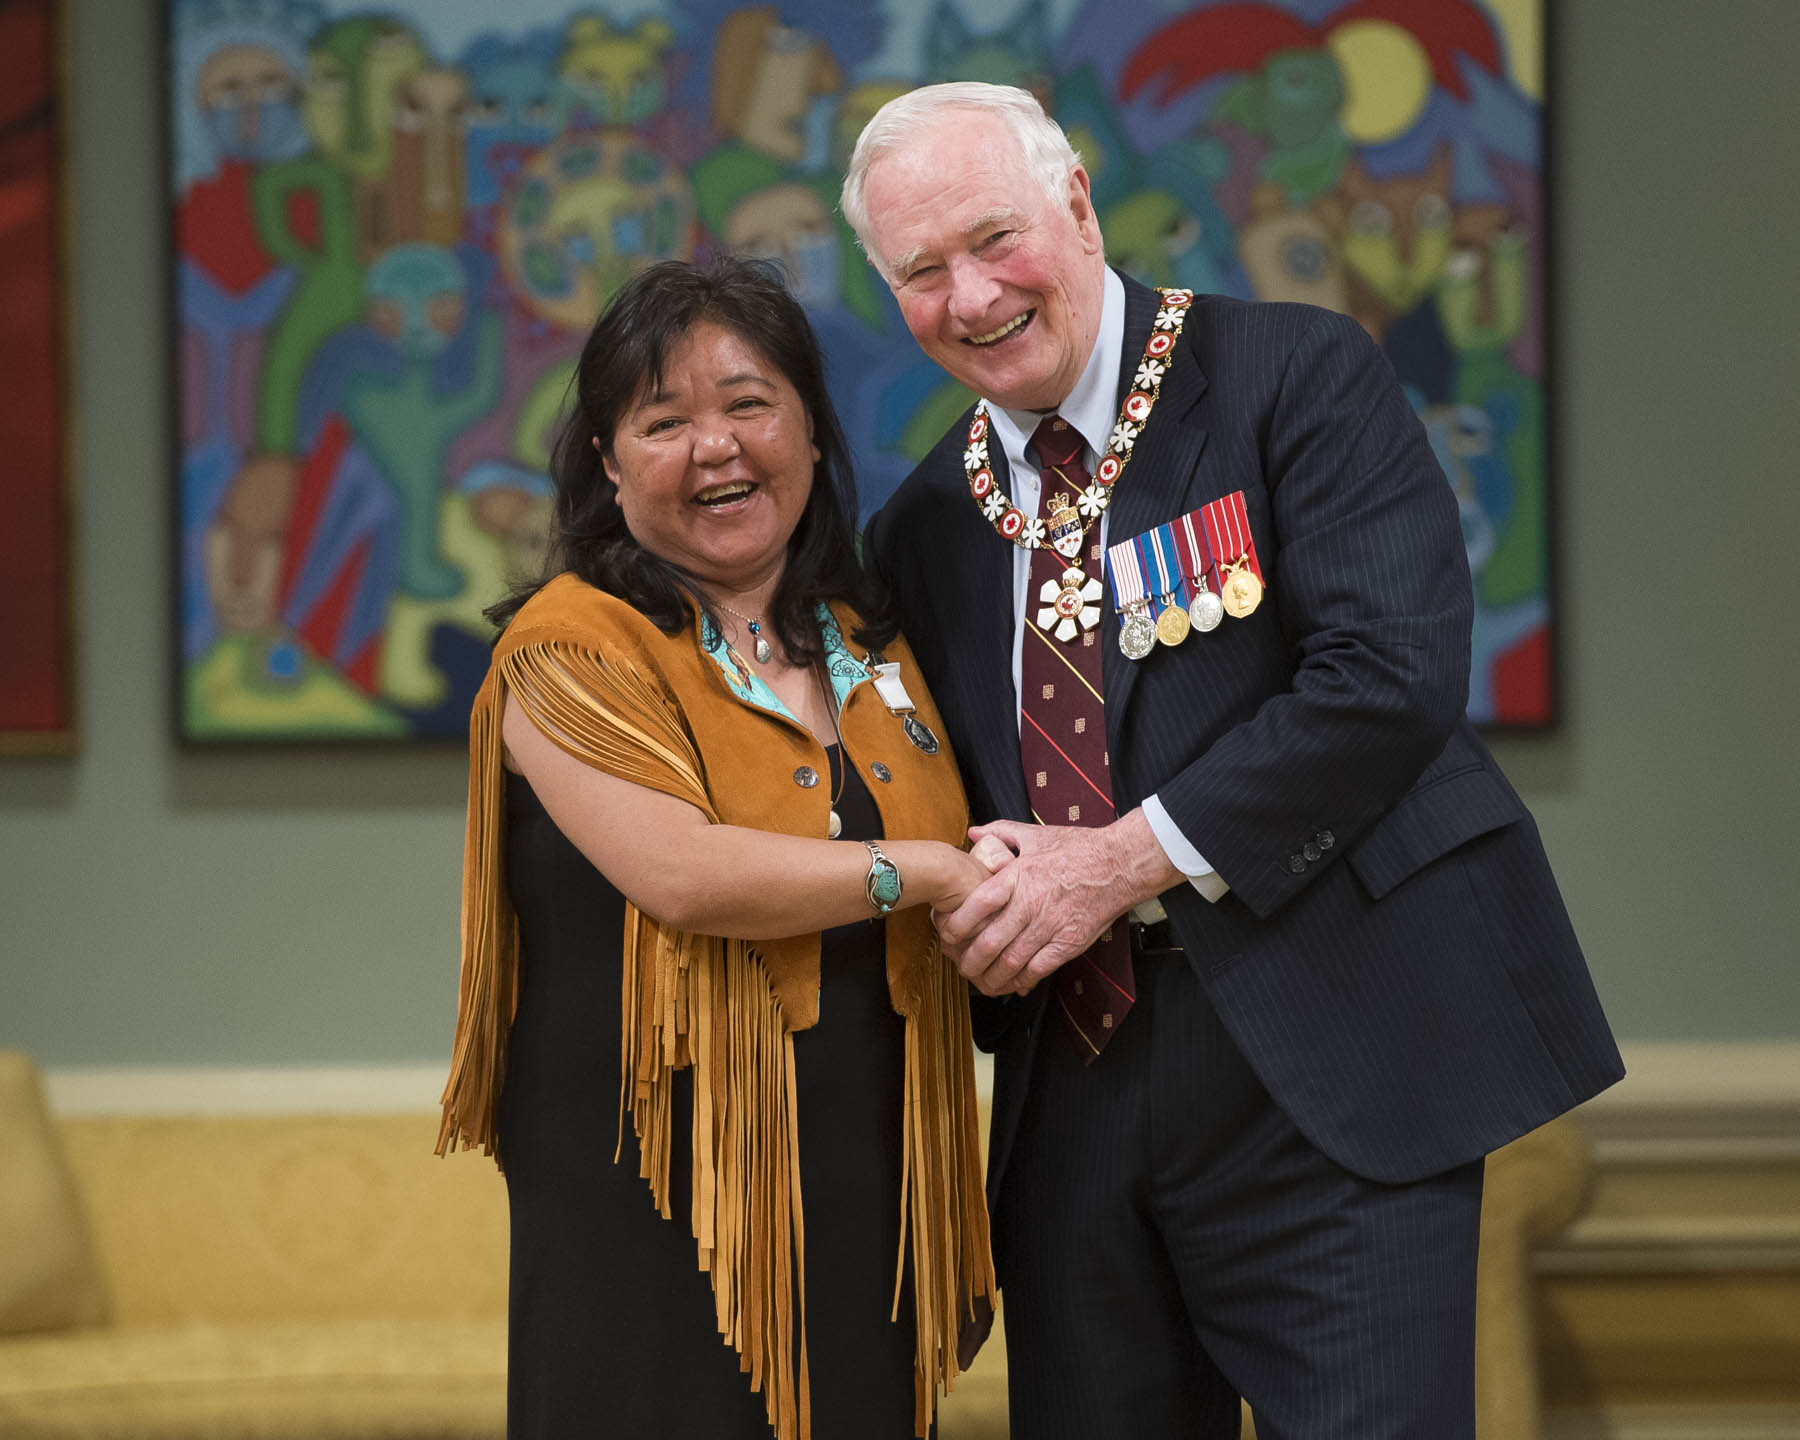 Darlene Scurvey received the Polar Medal. As an early childhood educator at the Duska'a Head Start Family Learning Centre, Ms. Scurvey actively promotes the preservation of traditional language and culture. With the assistance of elders, she provides preschool-age children with a range of culturally relevant learning experiences that incorporate social interaction and language instruction.